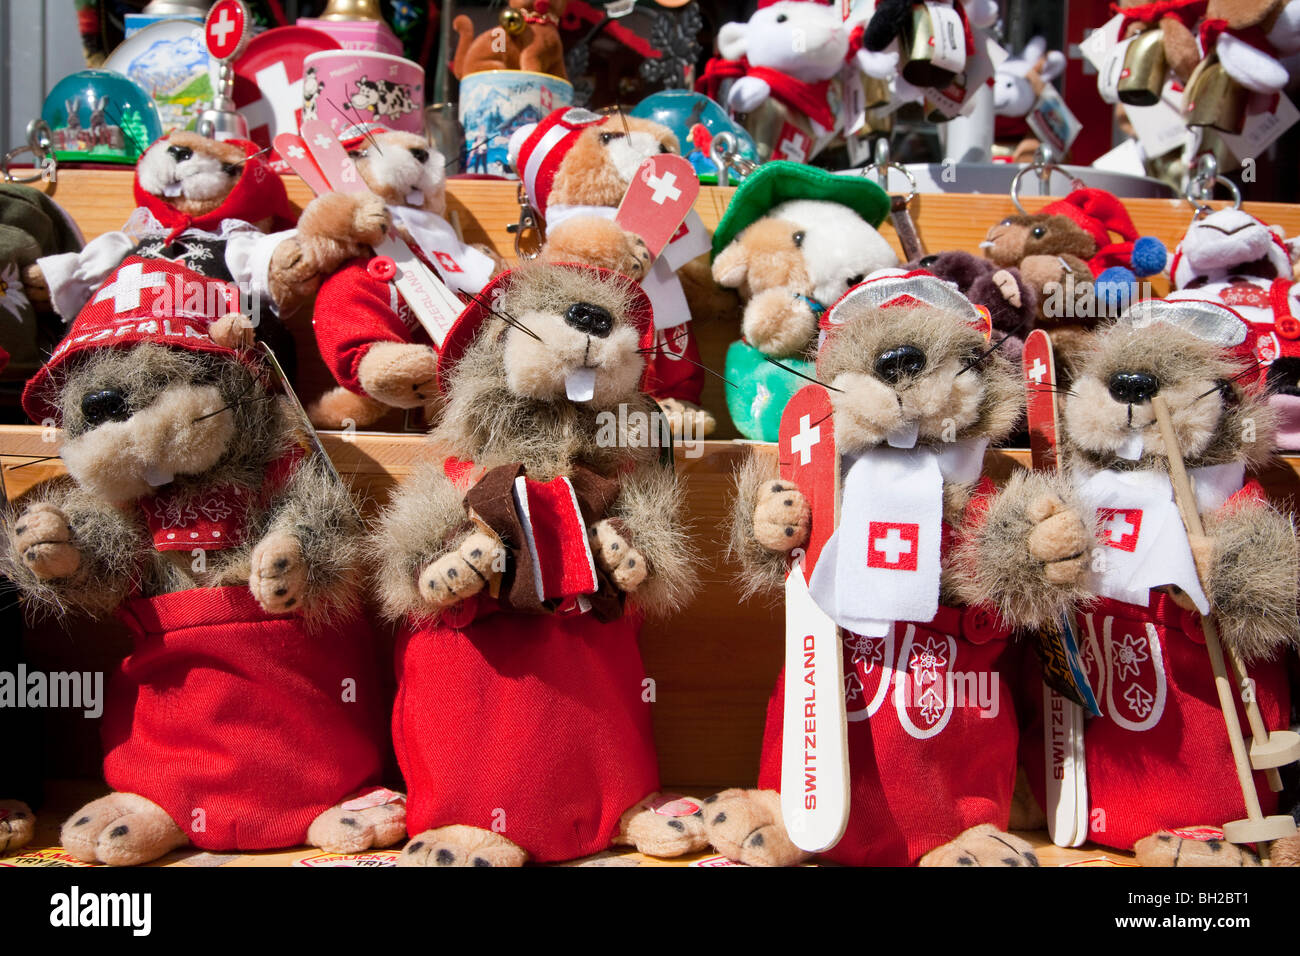 MARMOTS, STUFFED ANIMAL, COSTUMED AS SWISS, DAVOS, GRISONS, SWITZERLAND - Stock Image